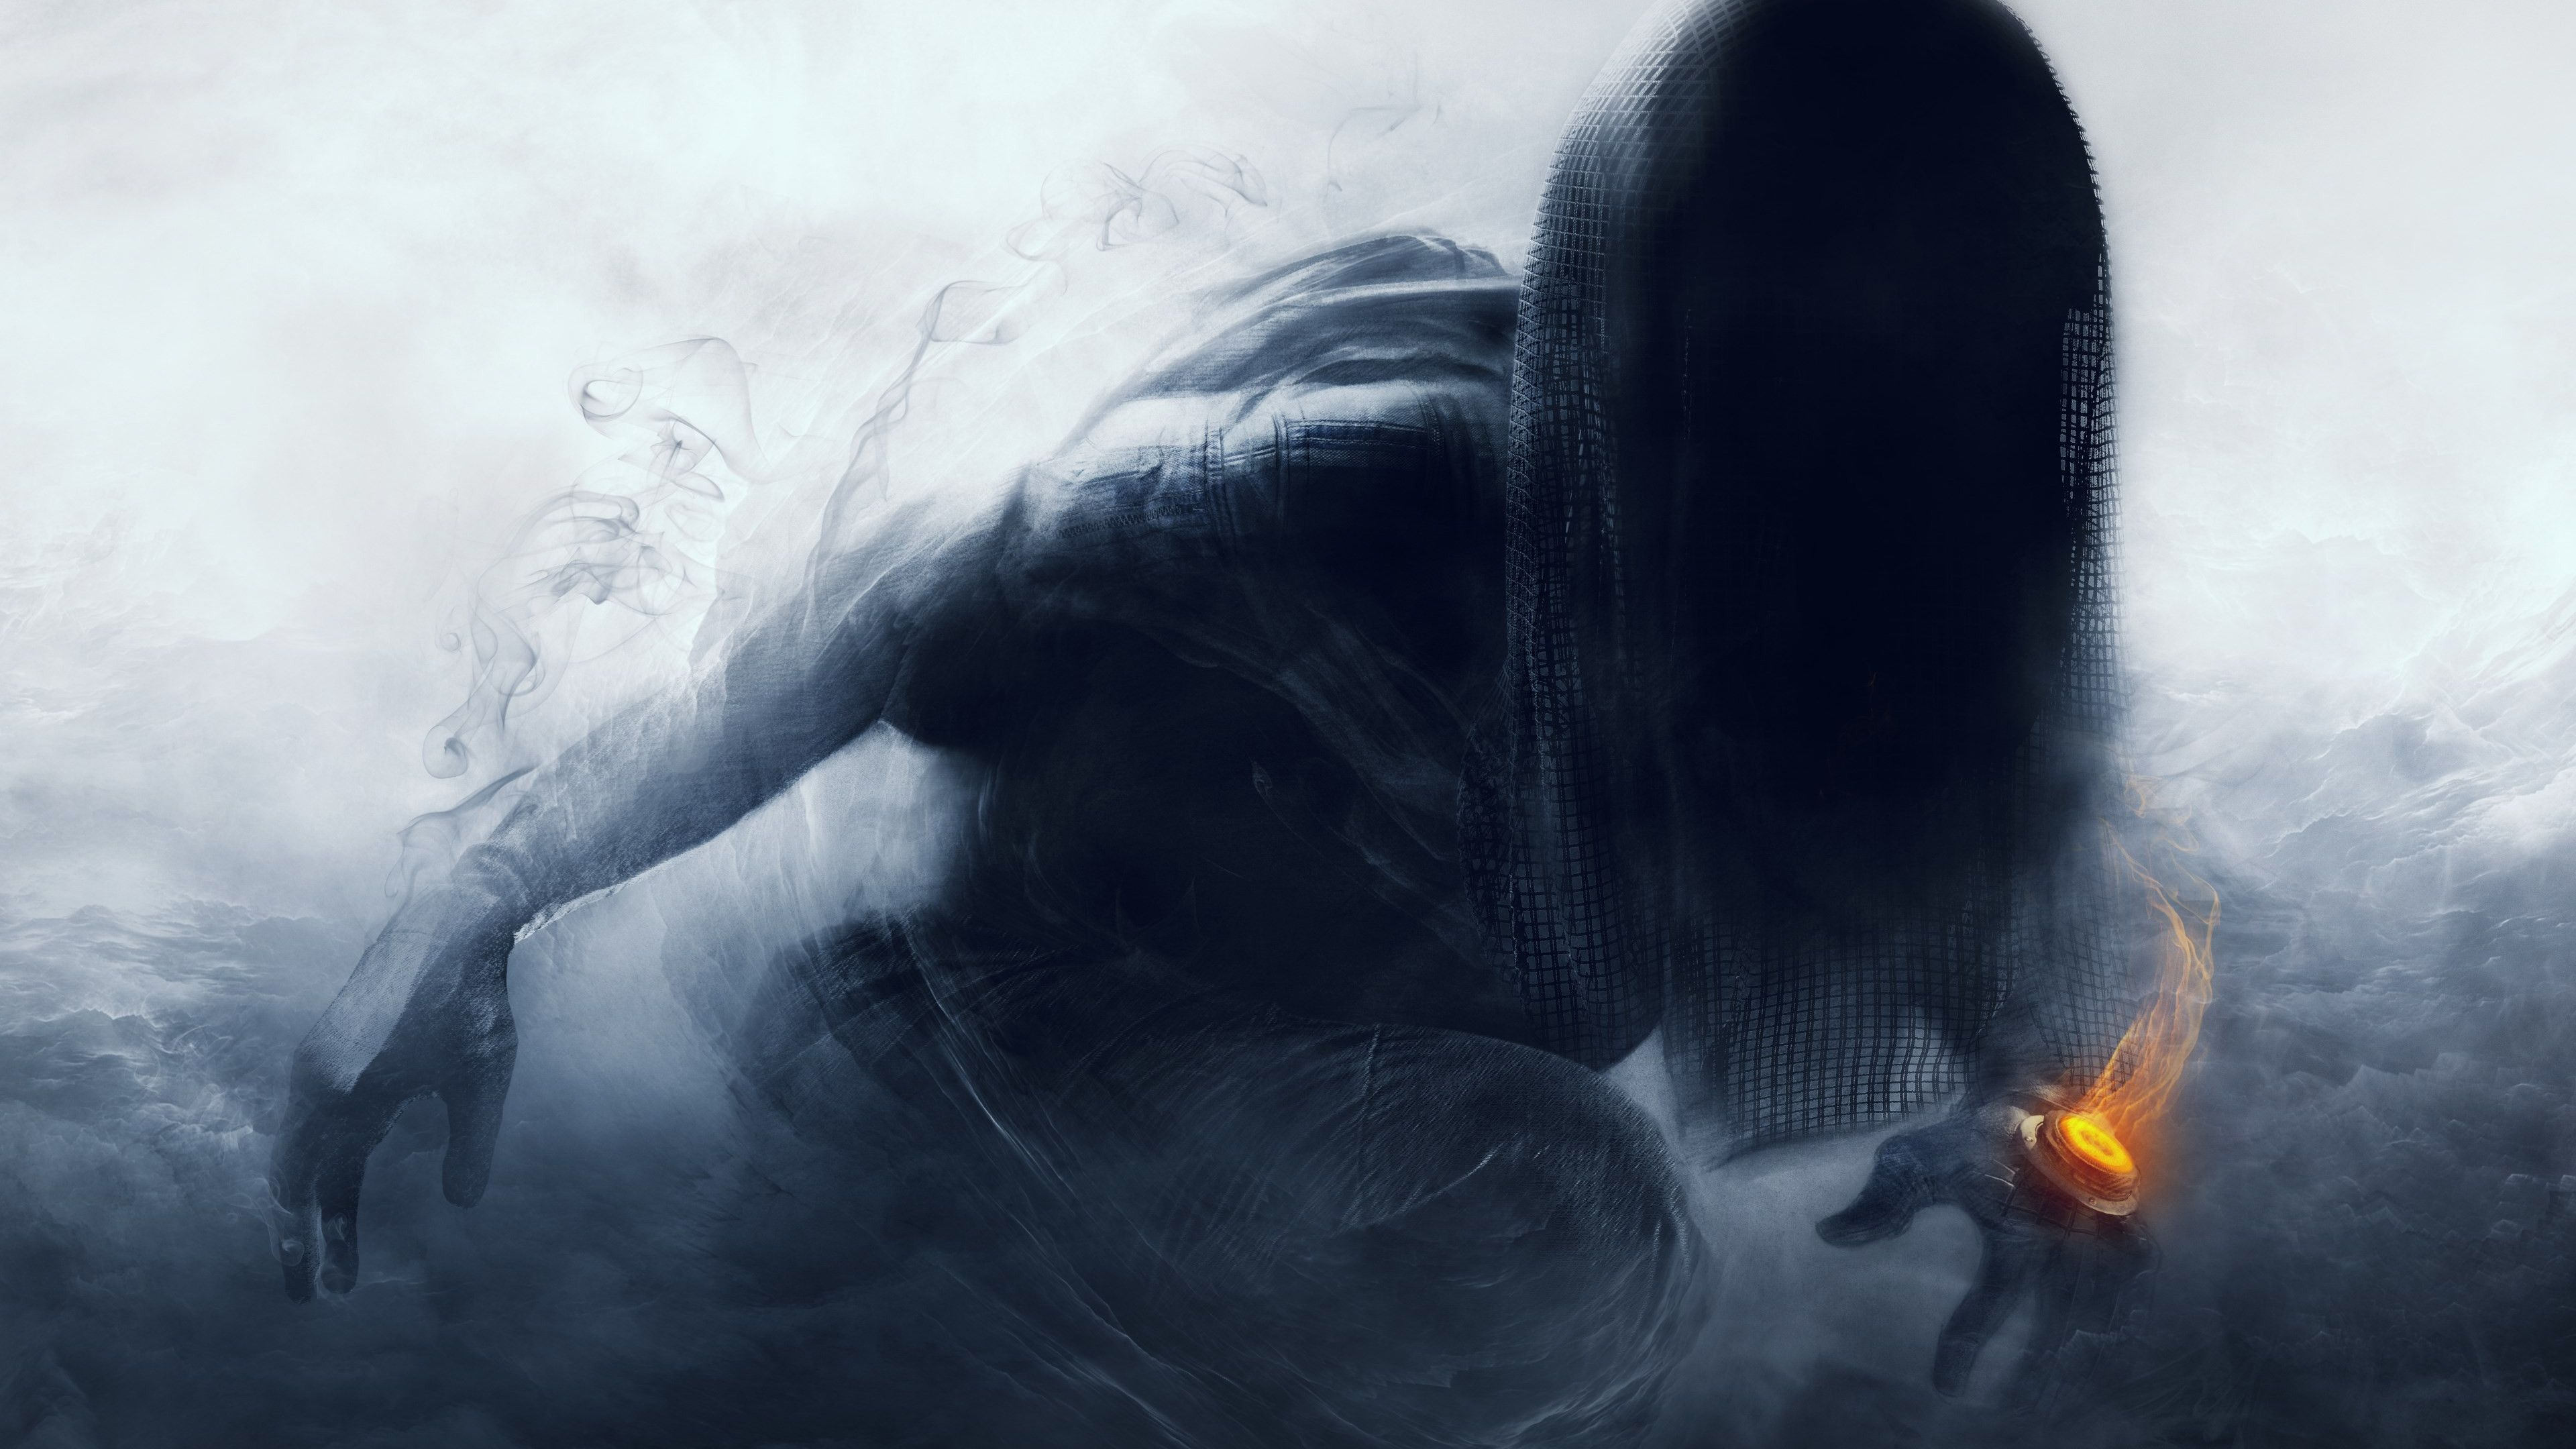 Poster Faceless 4k Rainbow 6 Siege With Images Rainbow Six